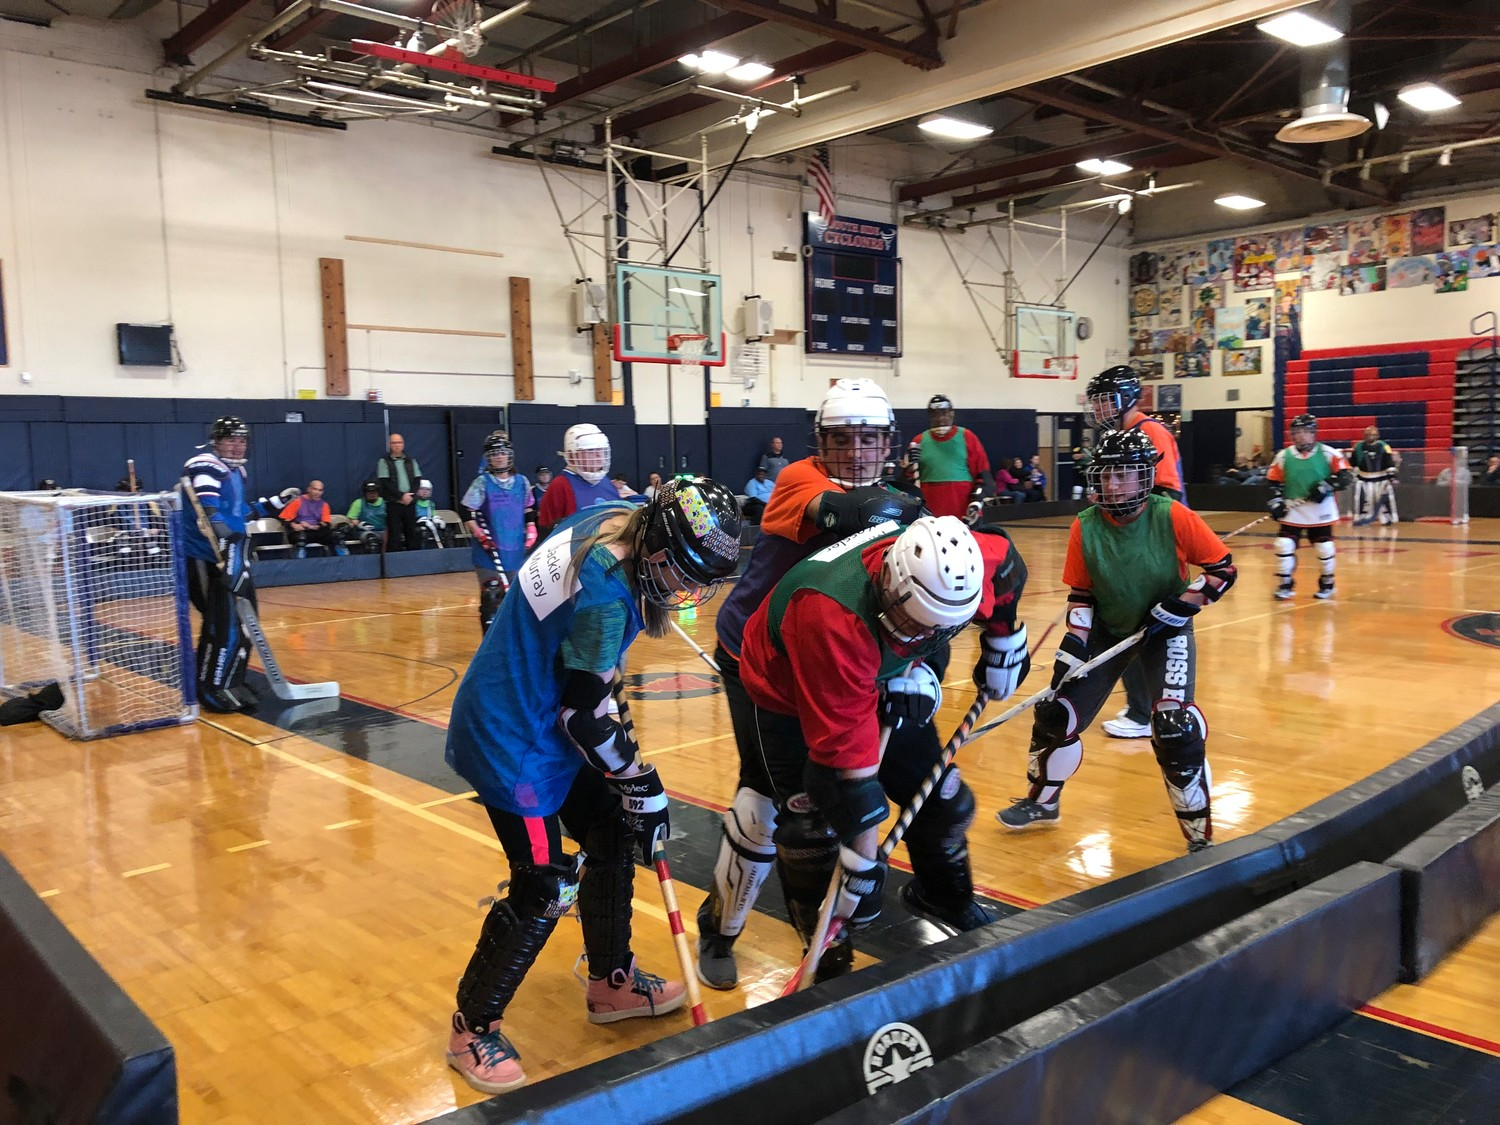 Athletes competed in spirited floor hockey games at South Side High School on Dec. 1.